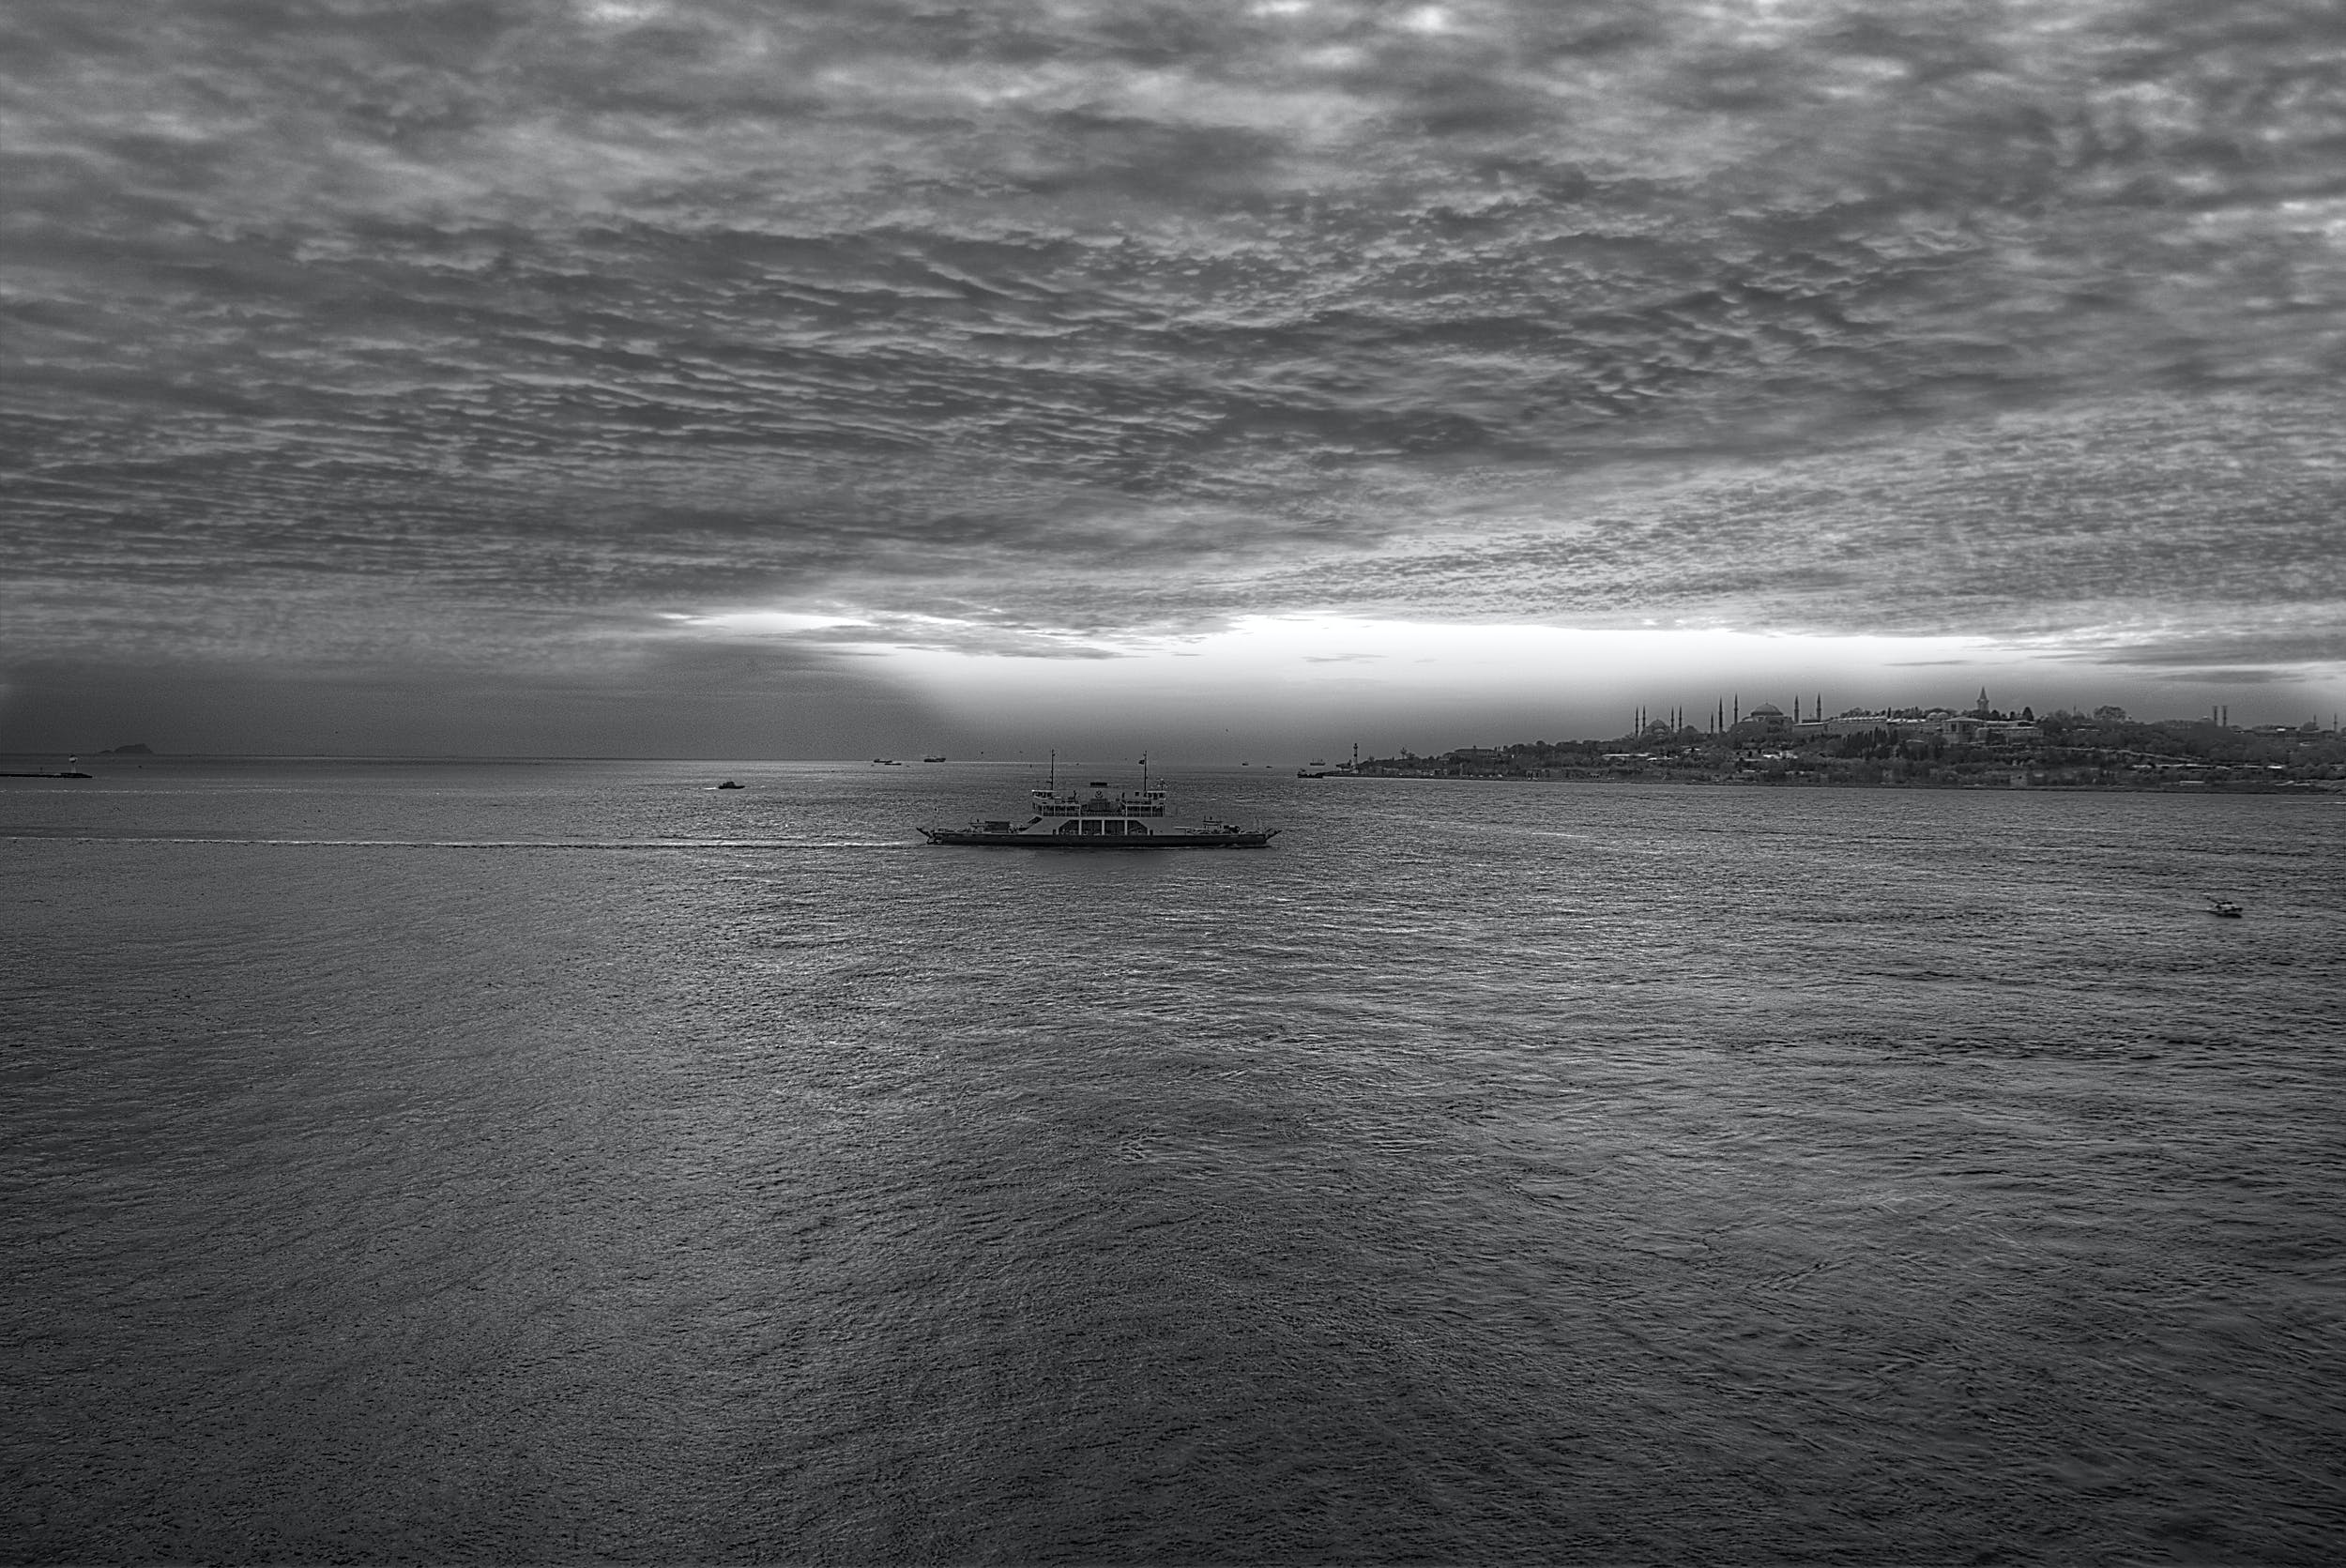 Gray Scale Photo of a Boat on Body of Water Under Cloudy Sky